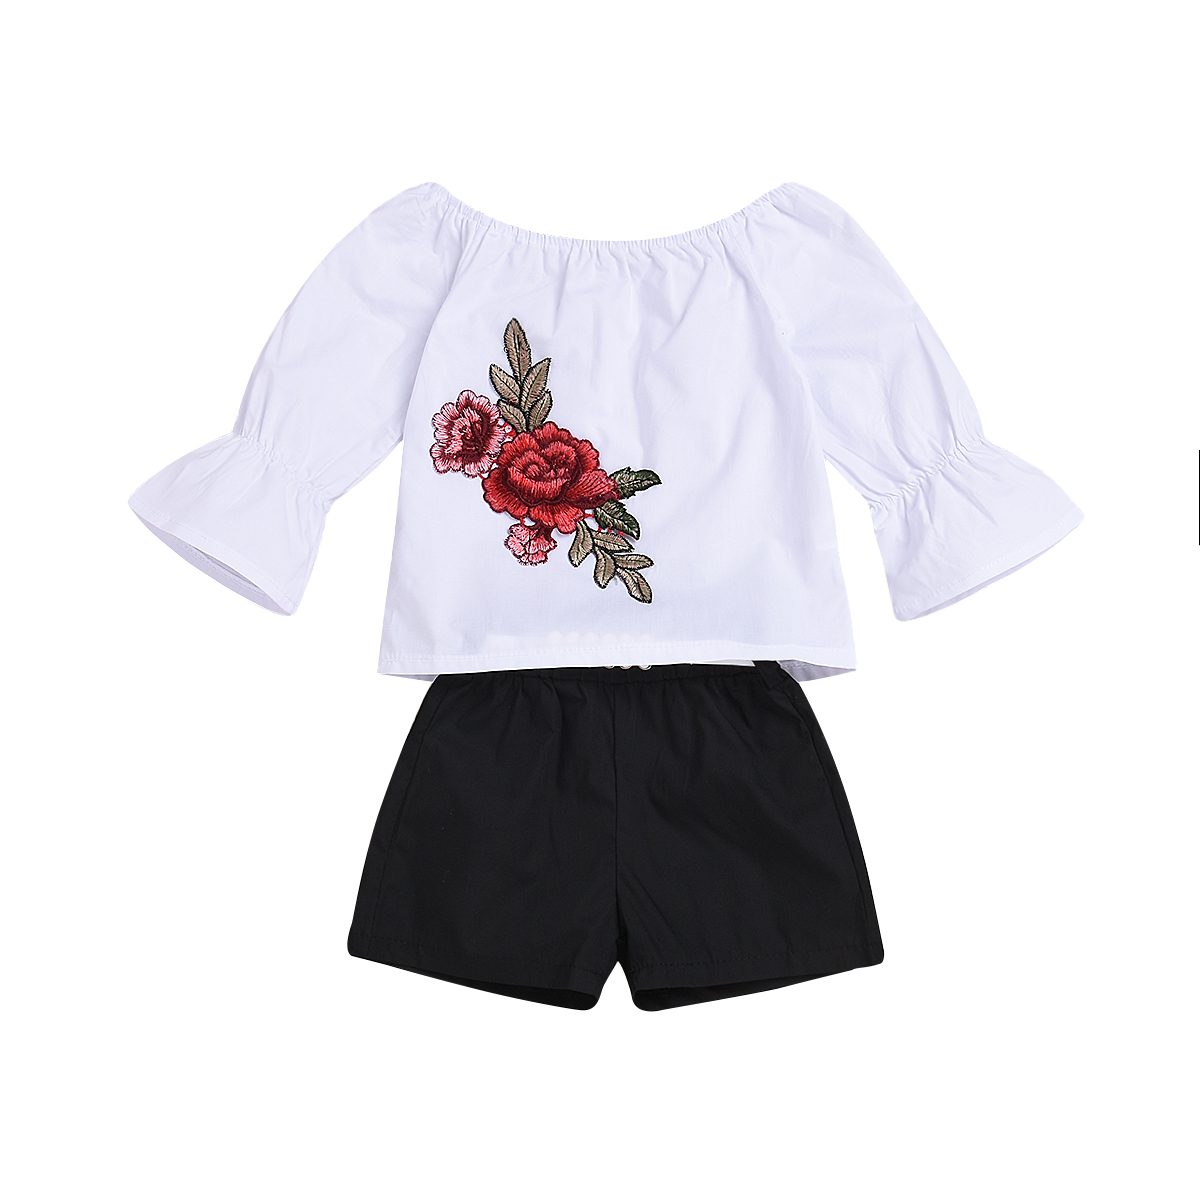 3PCS Set Baby Girl Embroidered Flower Outfits Off Shoulder T-shirt Tops Black Shorts Belt Clothes Summer